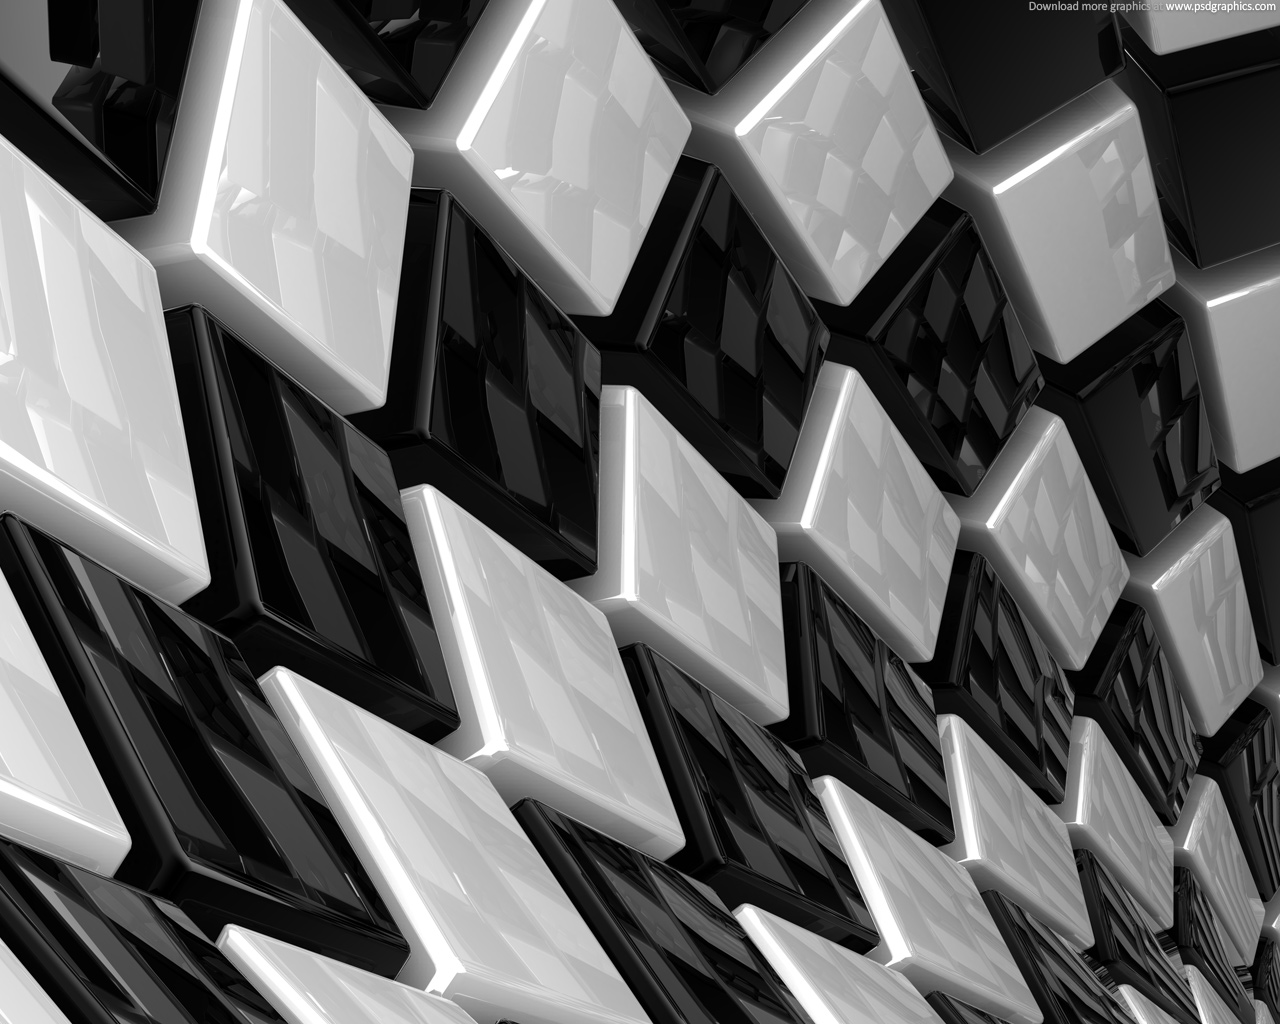 Medium size preview 1280x1024px Abstract cubes background 1280x1024